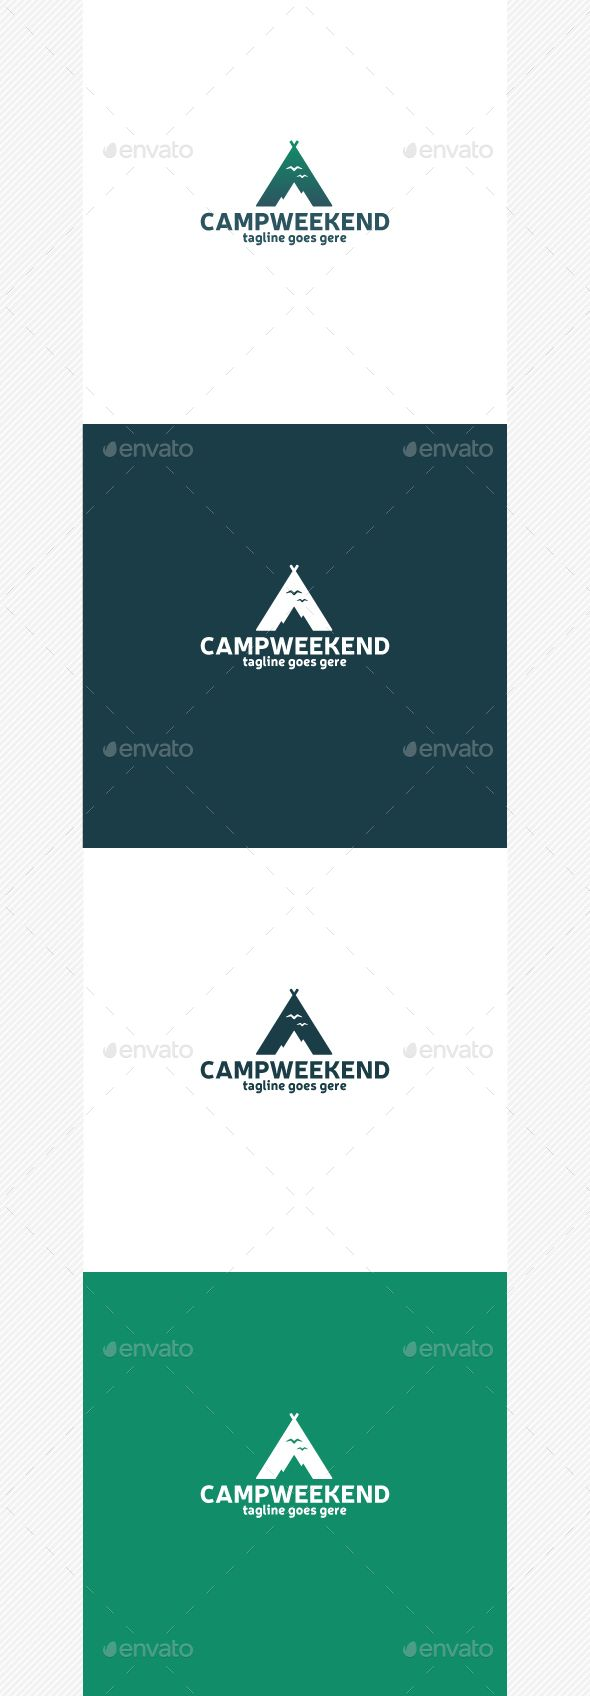 Camp Weekend Logo — Photoshop PSD #trip #vector • Available here → https://graphicriver.net/item/camp-weekend-logo/14483905?ref=pxcr